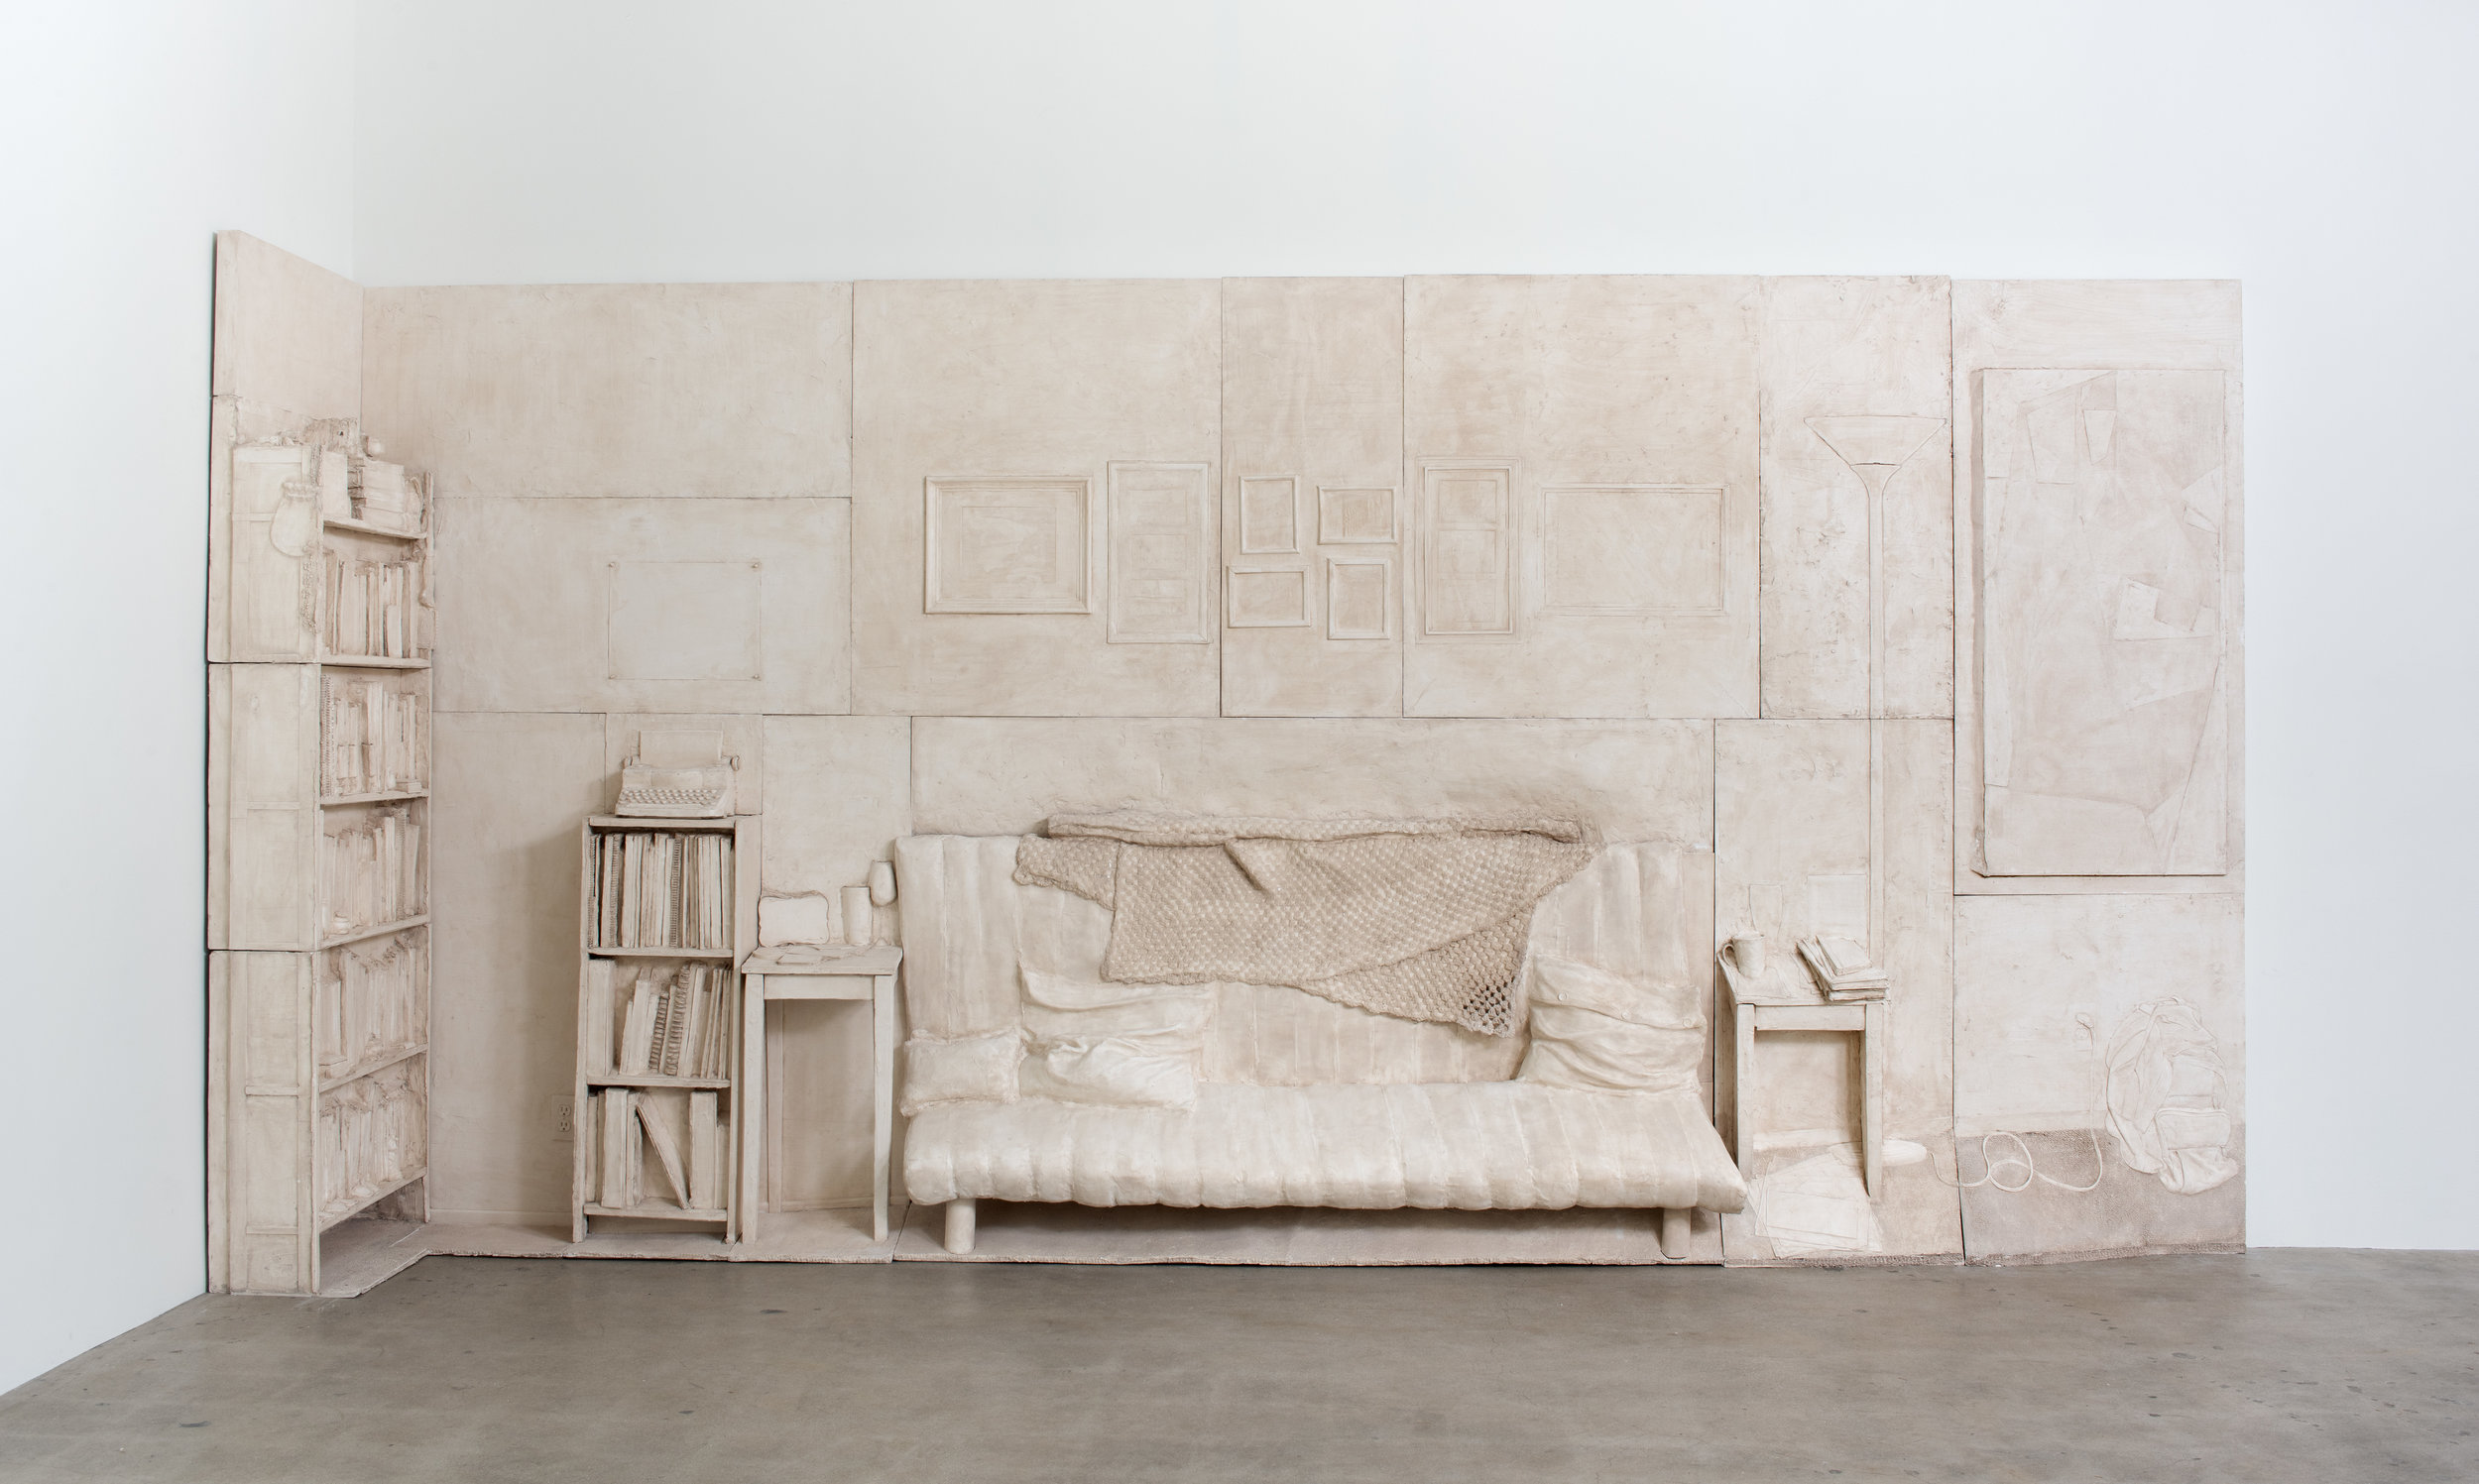 Live/Work , 2019 Gypsum cement, burlap, and wood 96 x 192 x 36 inches